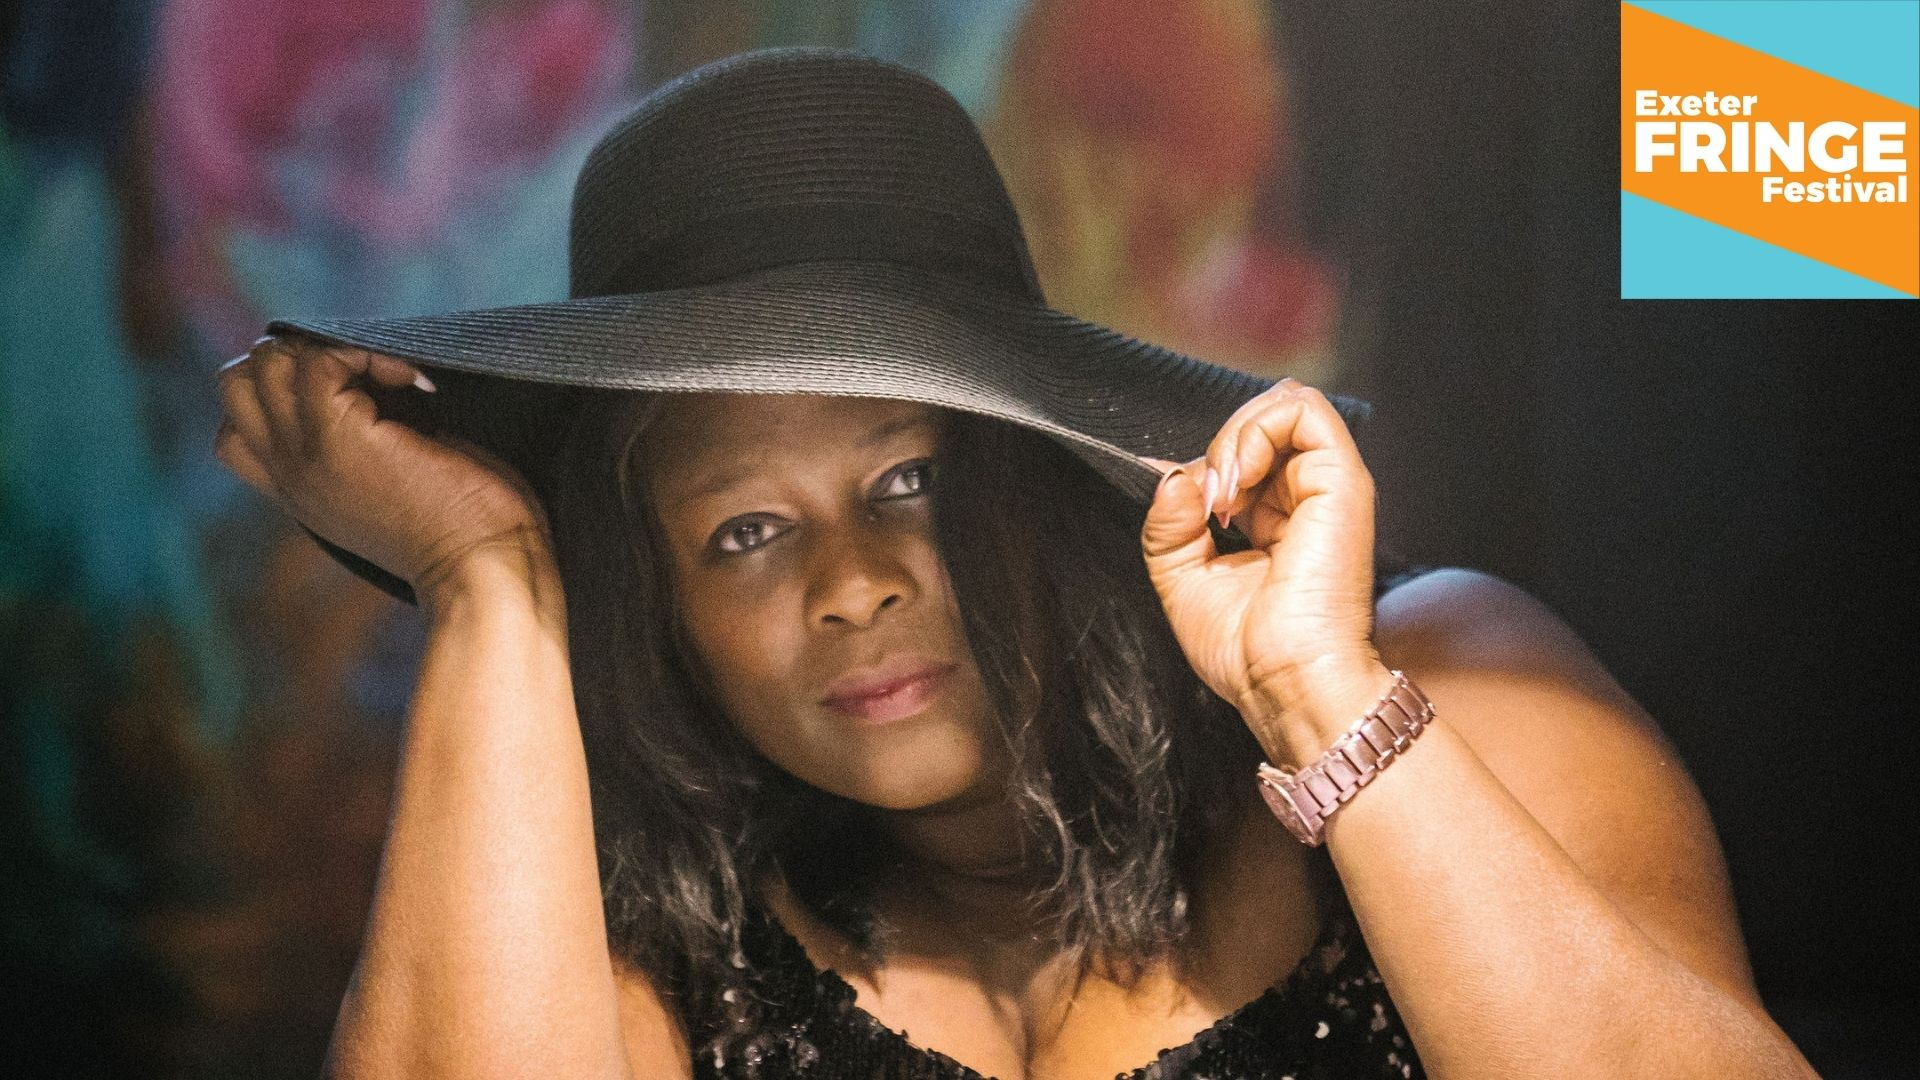 Promotional image featuring Annette Gregory with a wide-rimmed black sun hat